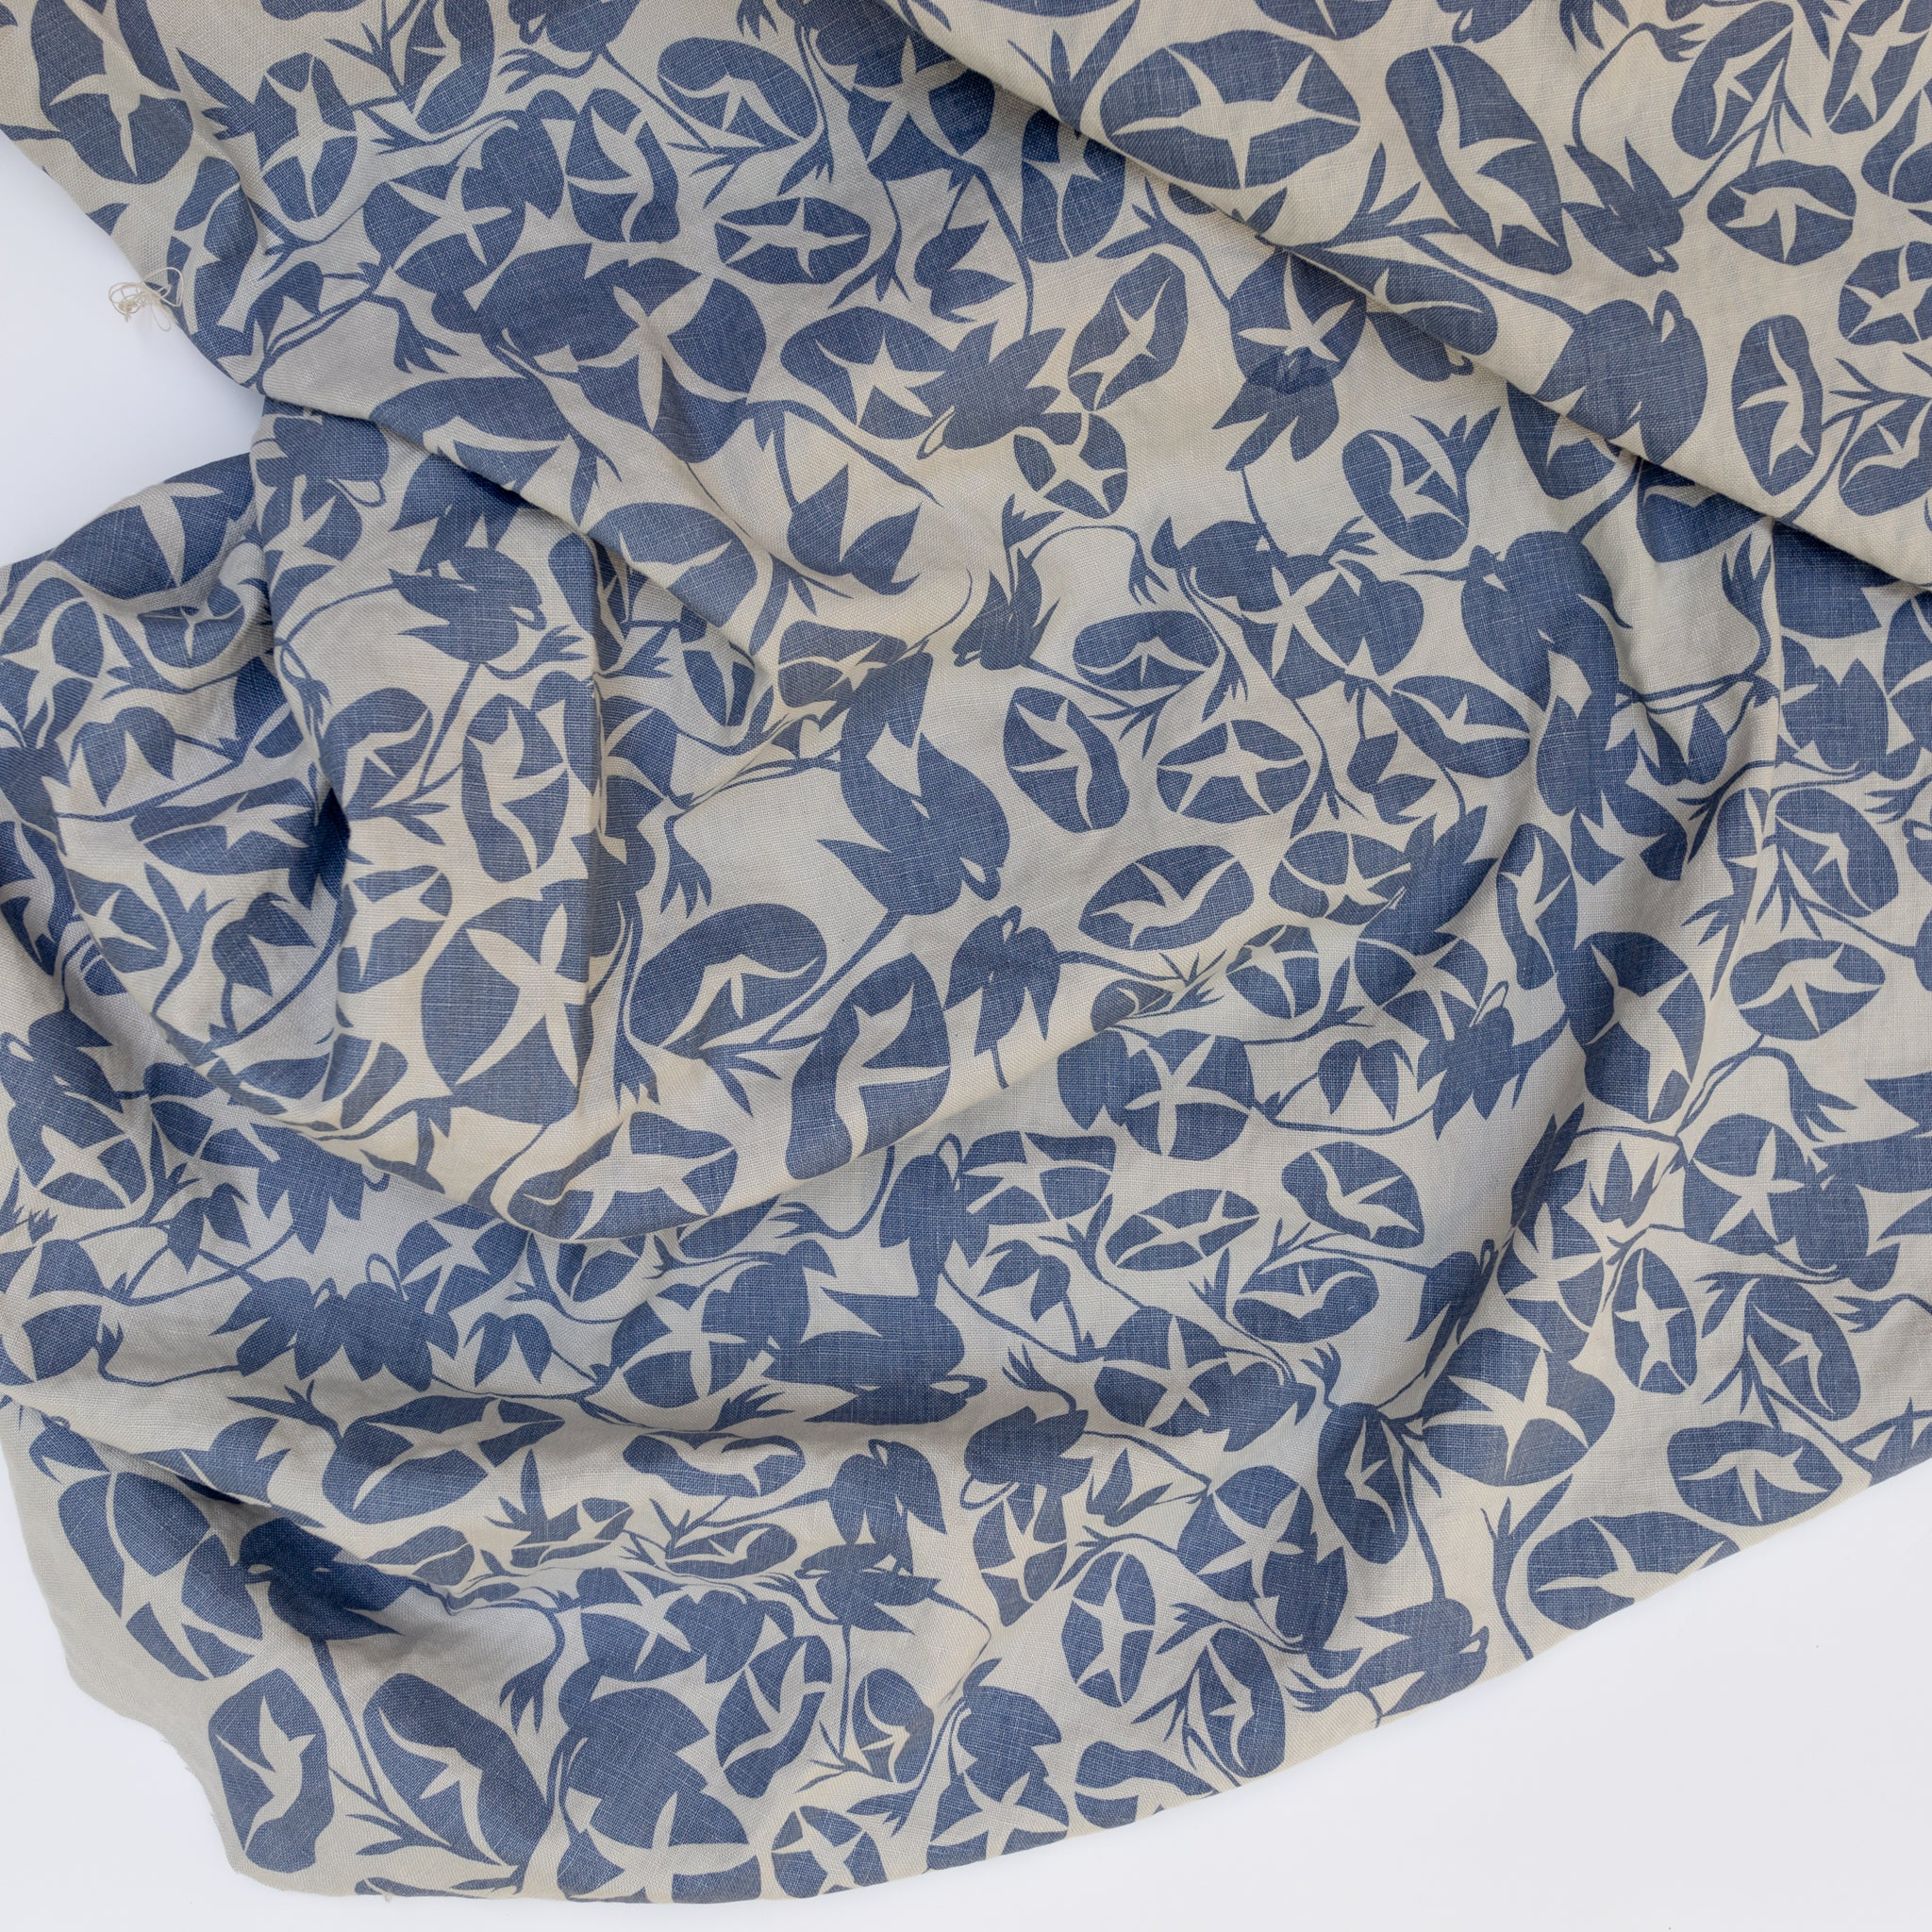 Linen fabric screen printed with morning glory pattern